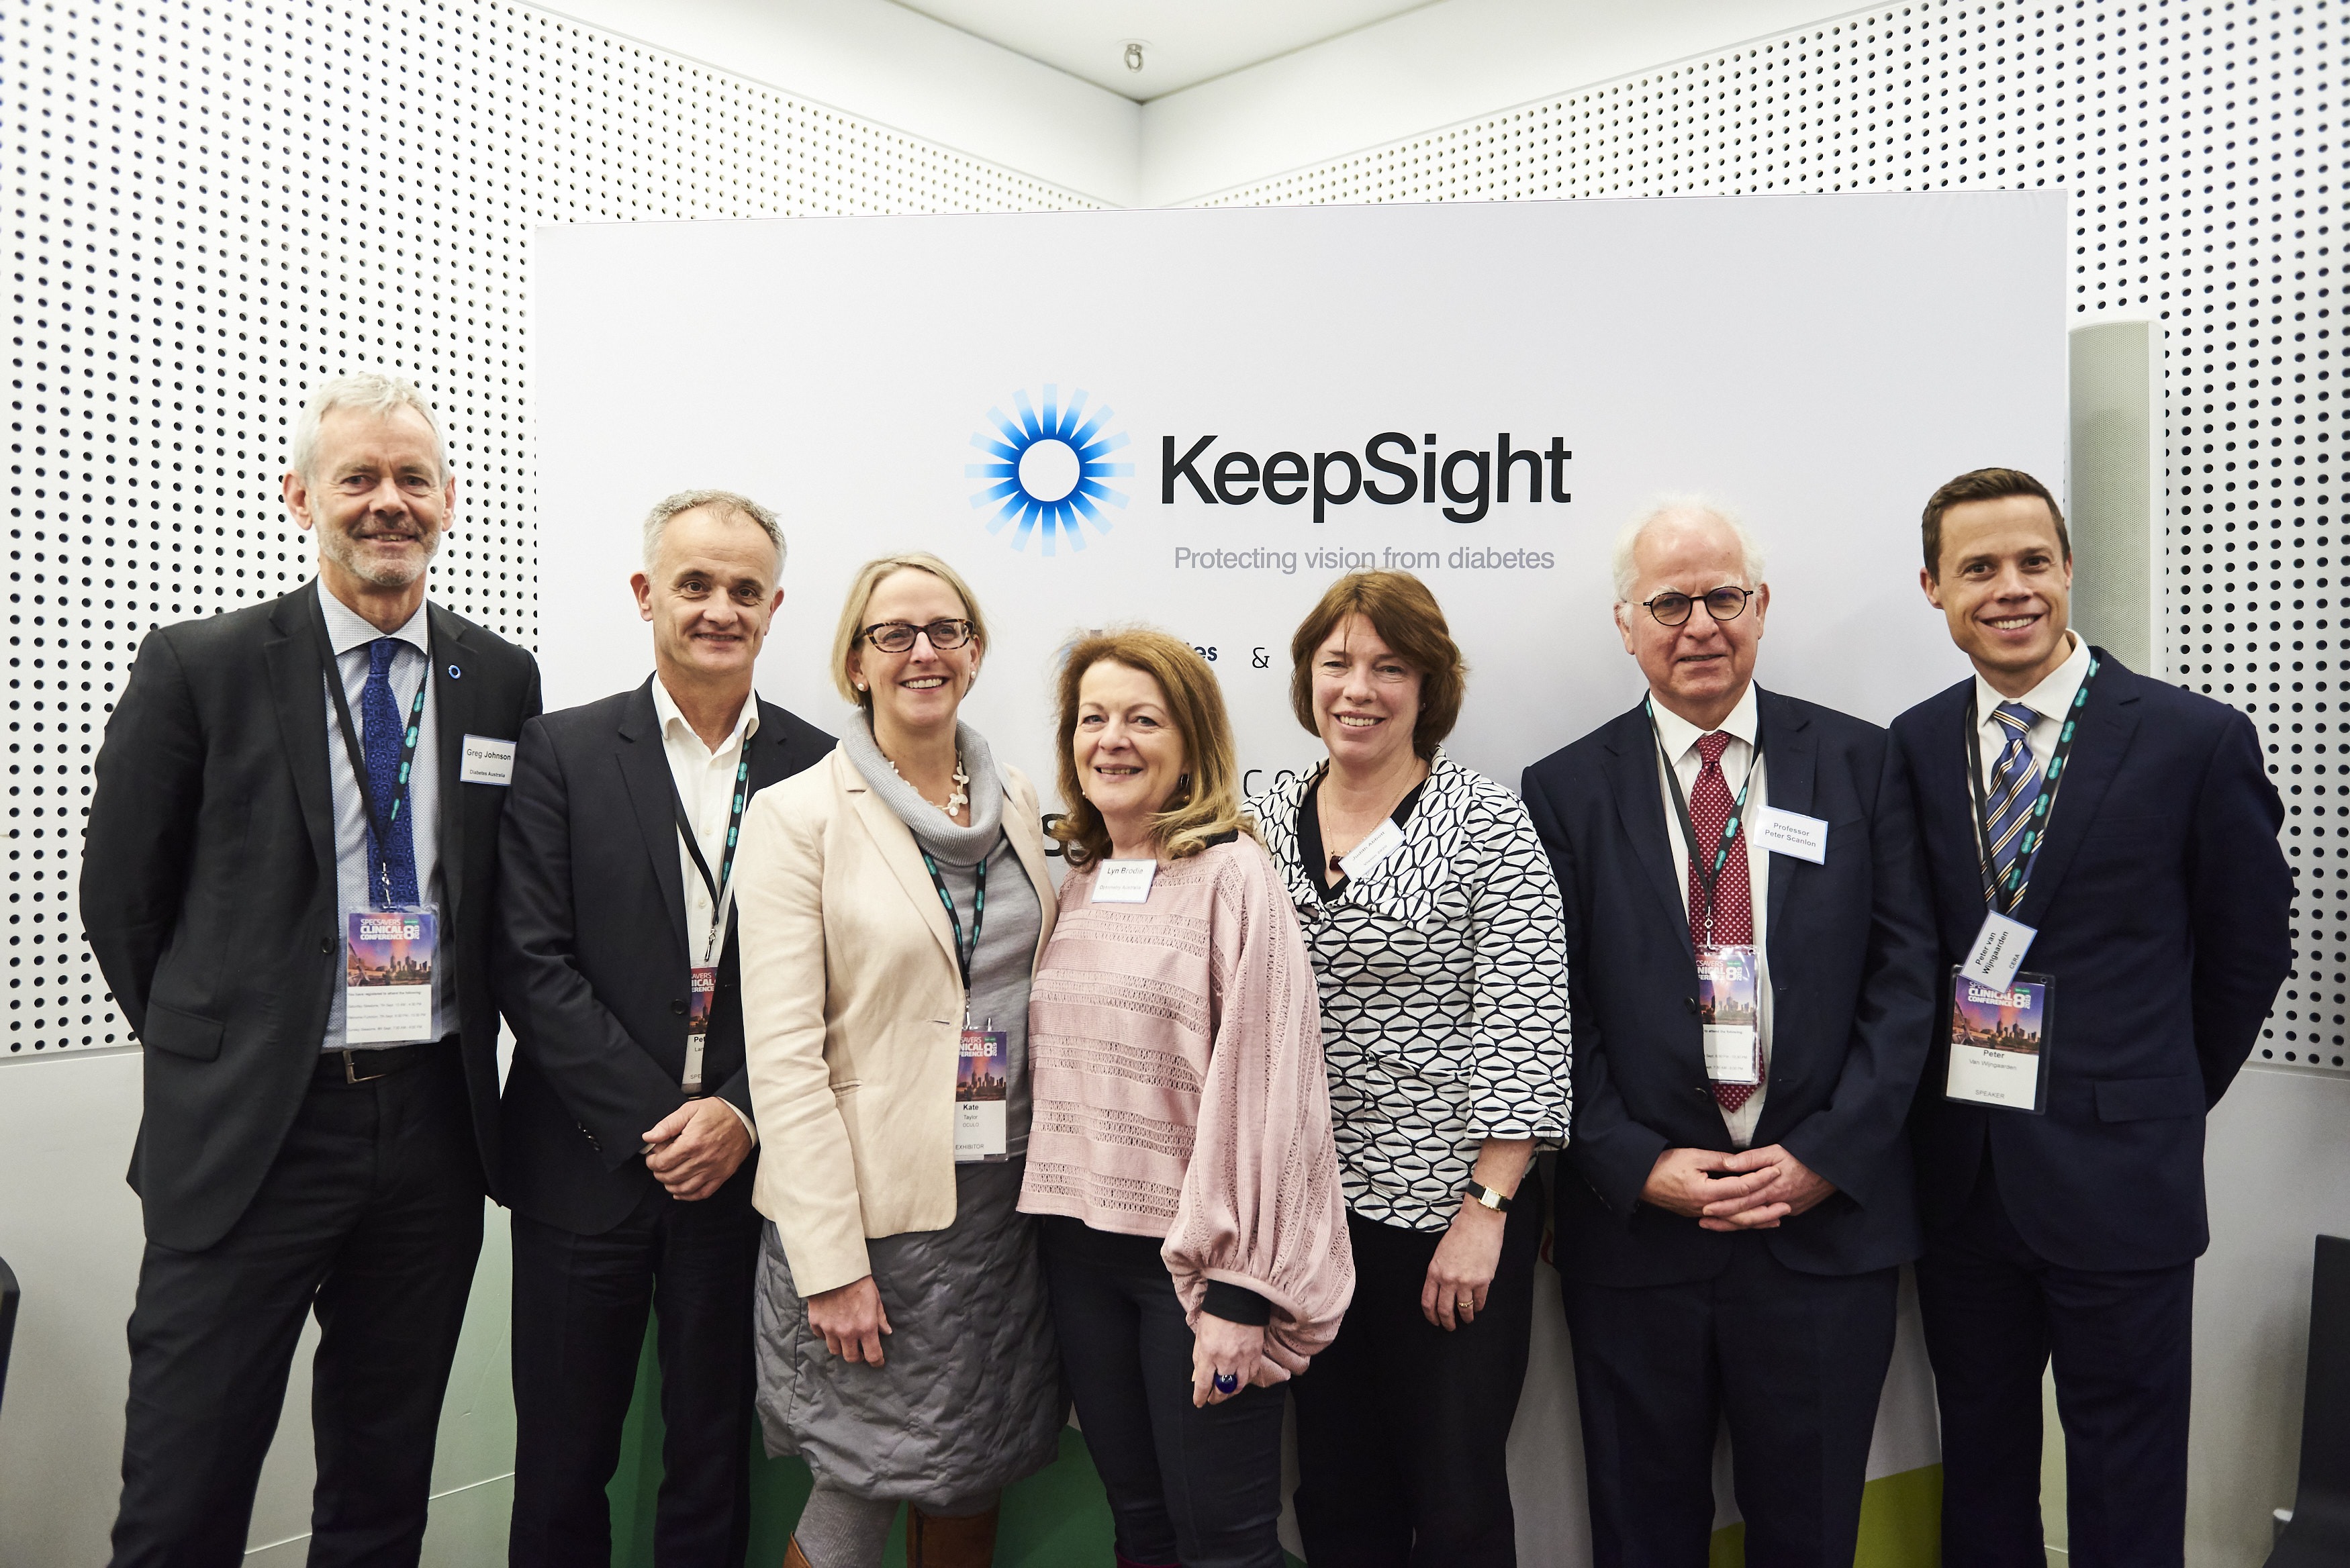 KeepSight: fighting diabetic eye disease in Australia